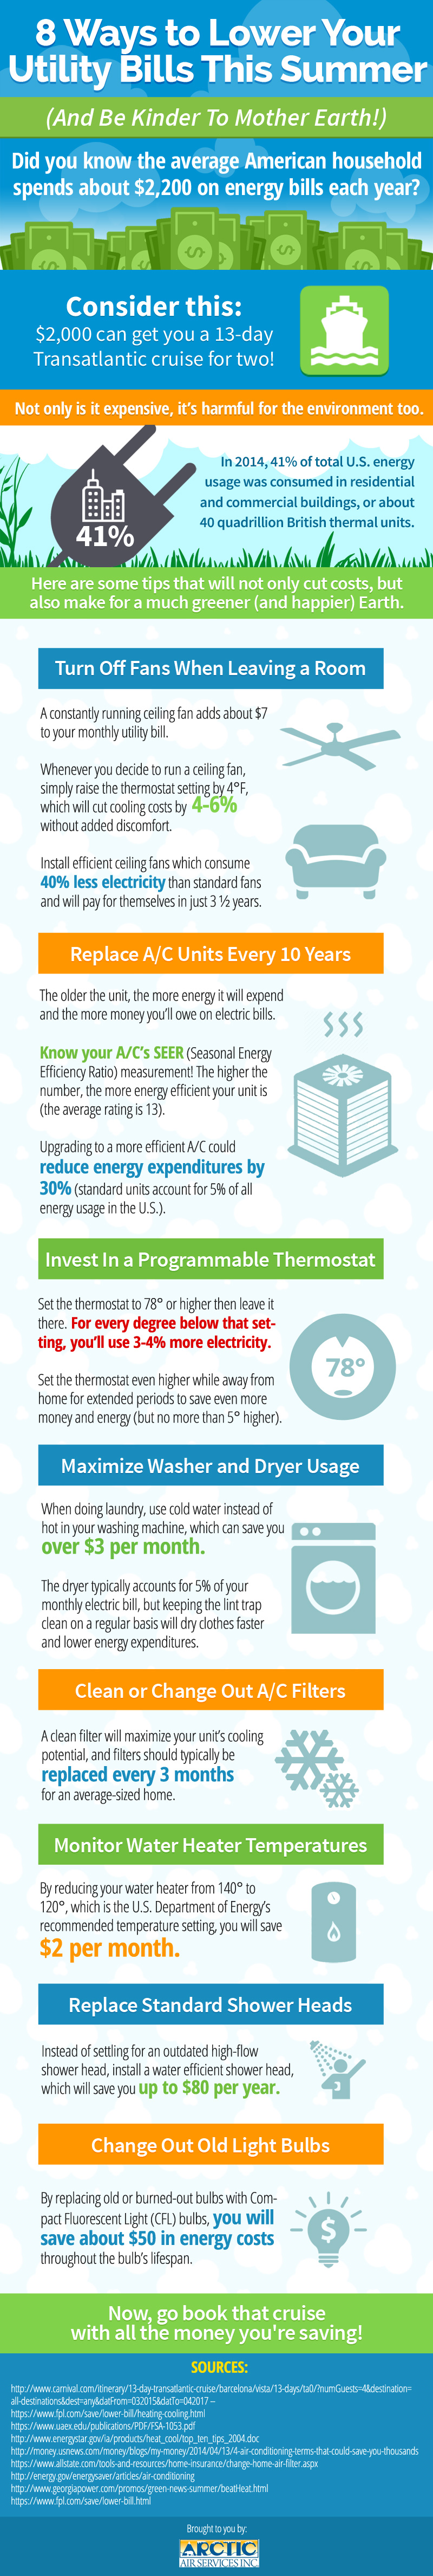 8 Ways To Lower Your Utility Bill This Summer